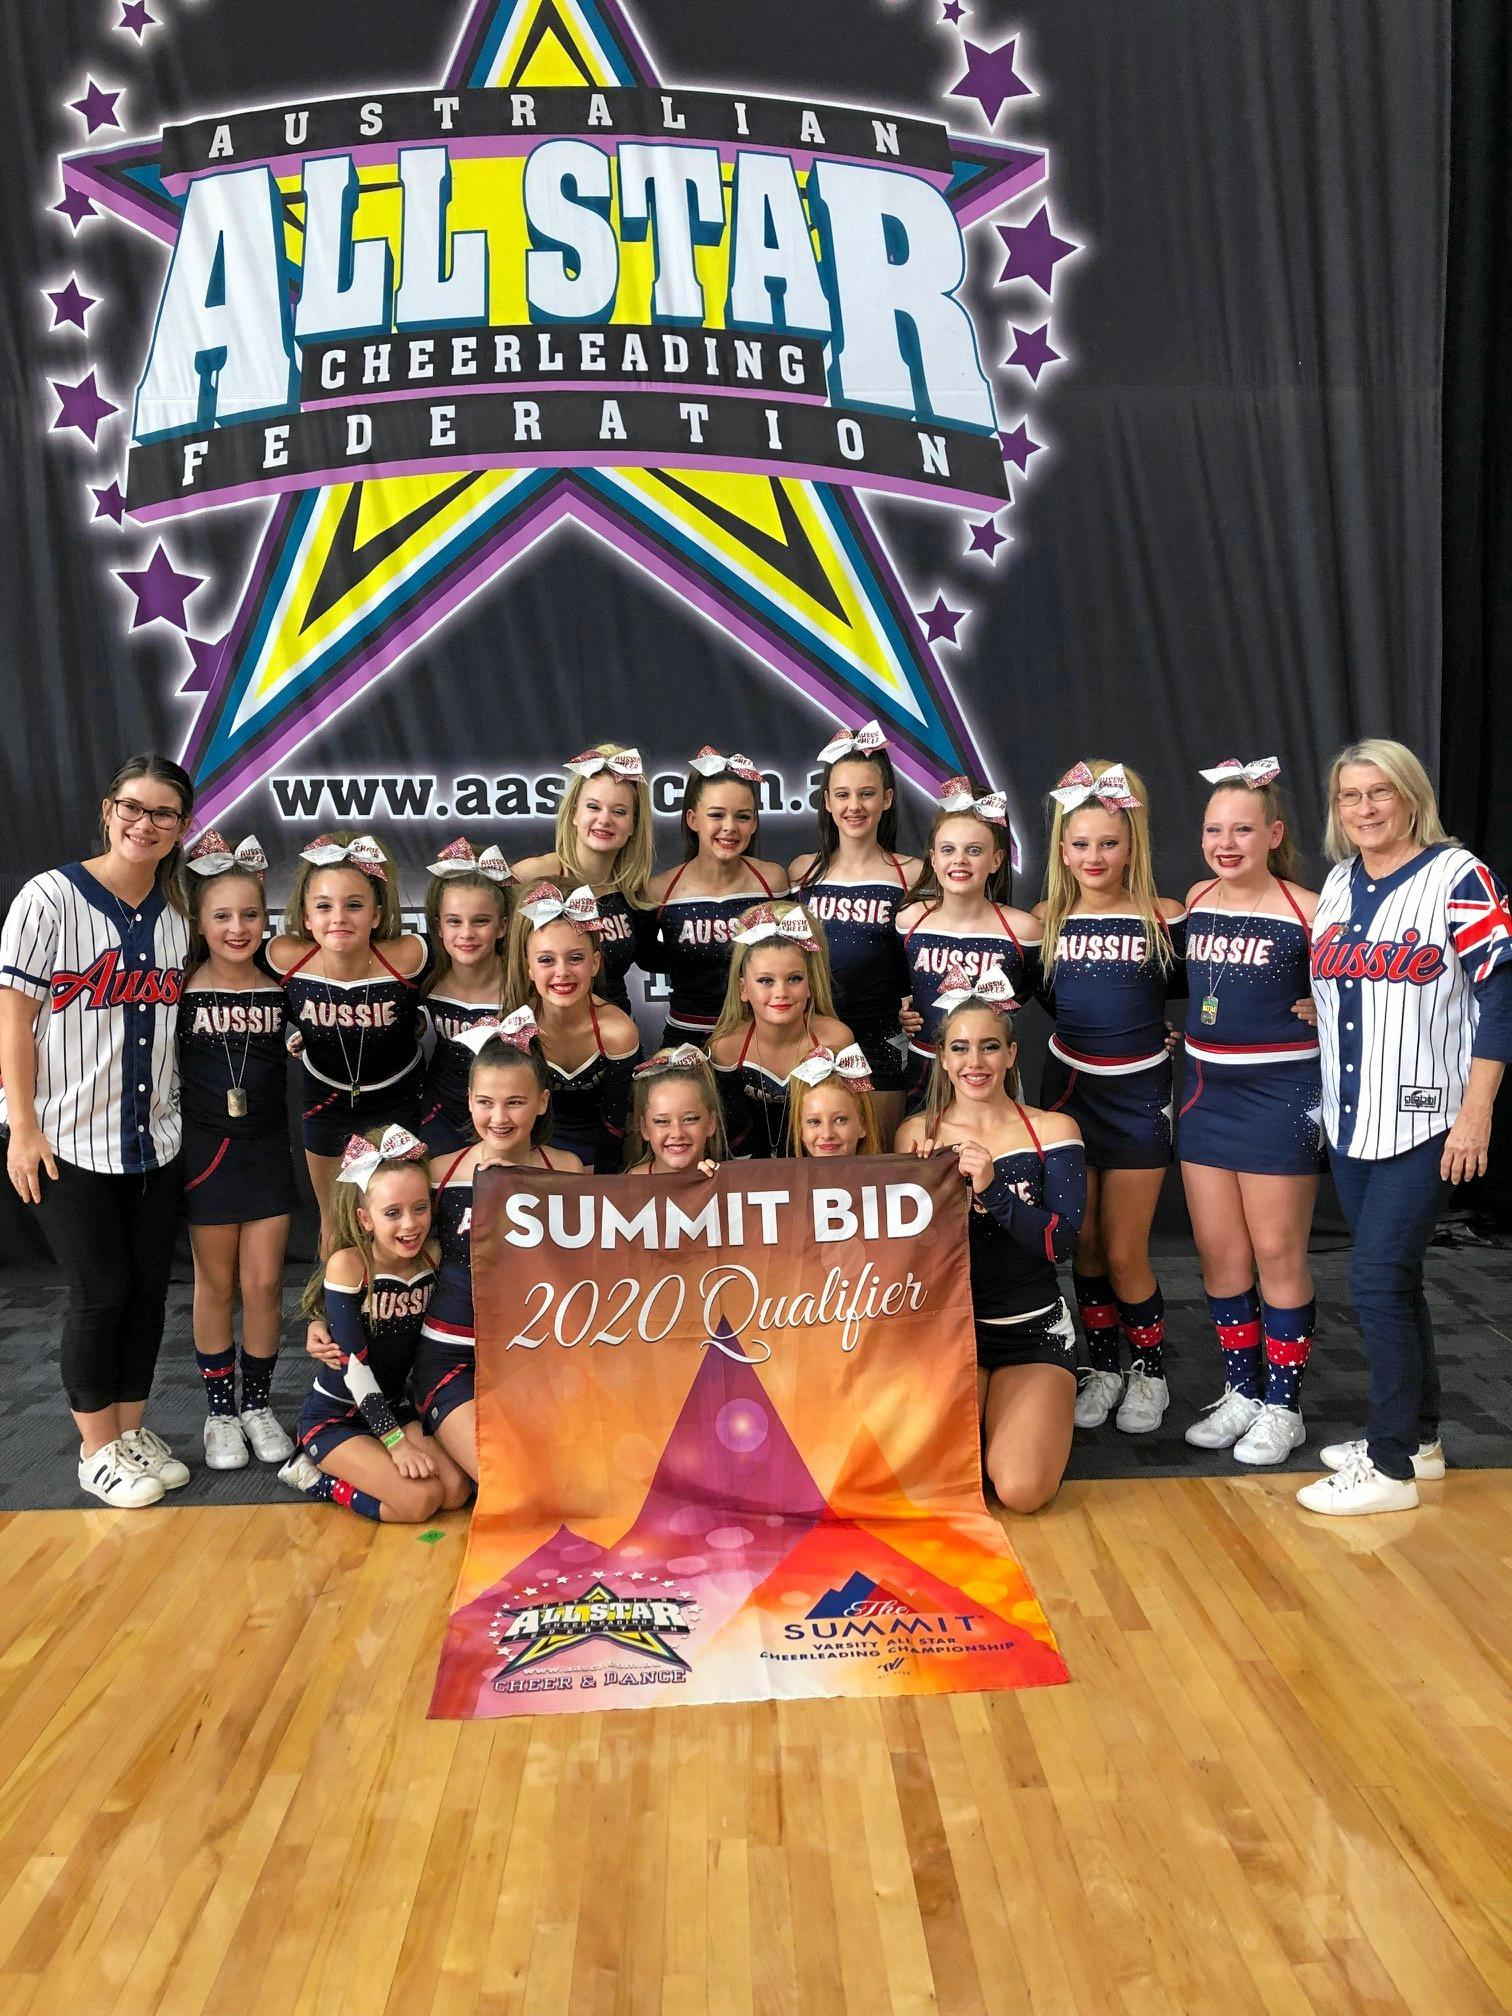 Aussie Cheer will take 16 athletes and two coaches to the world competition